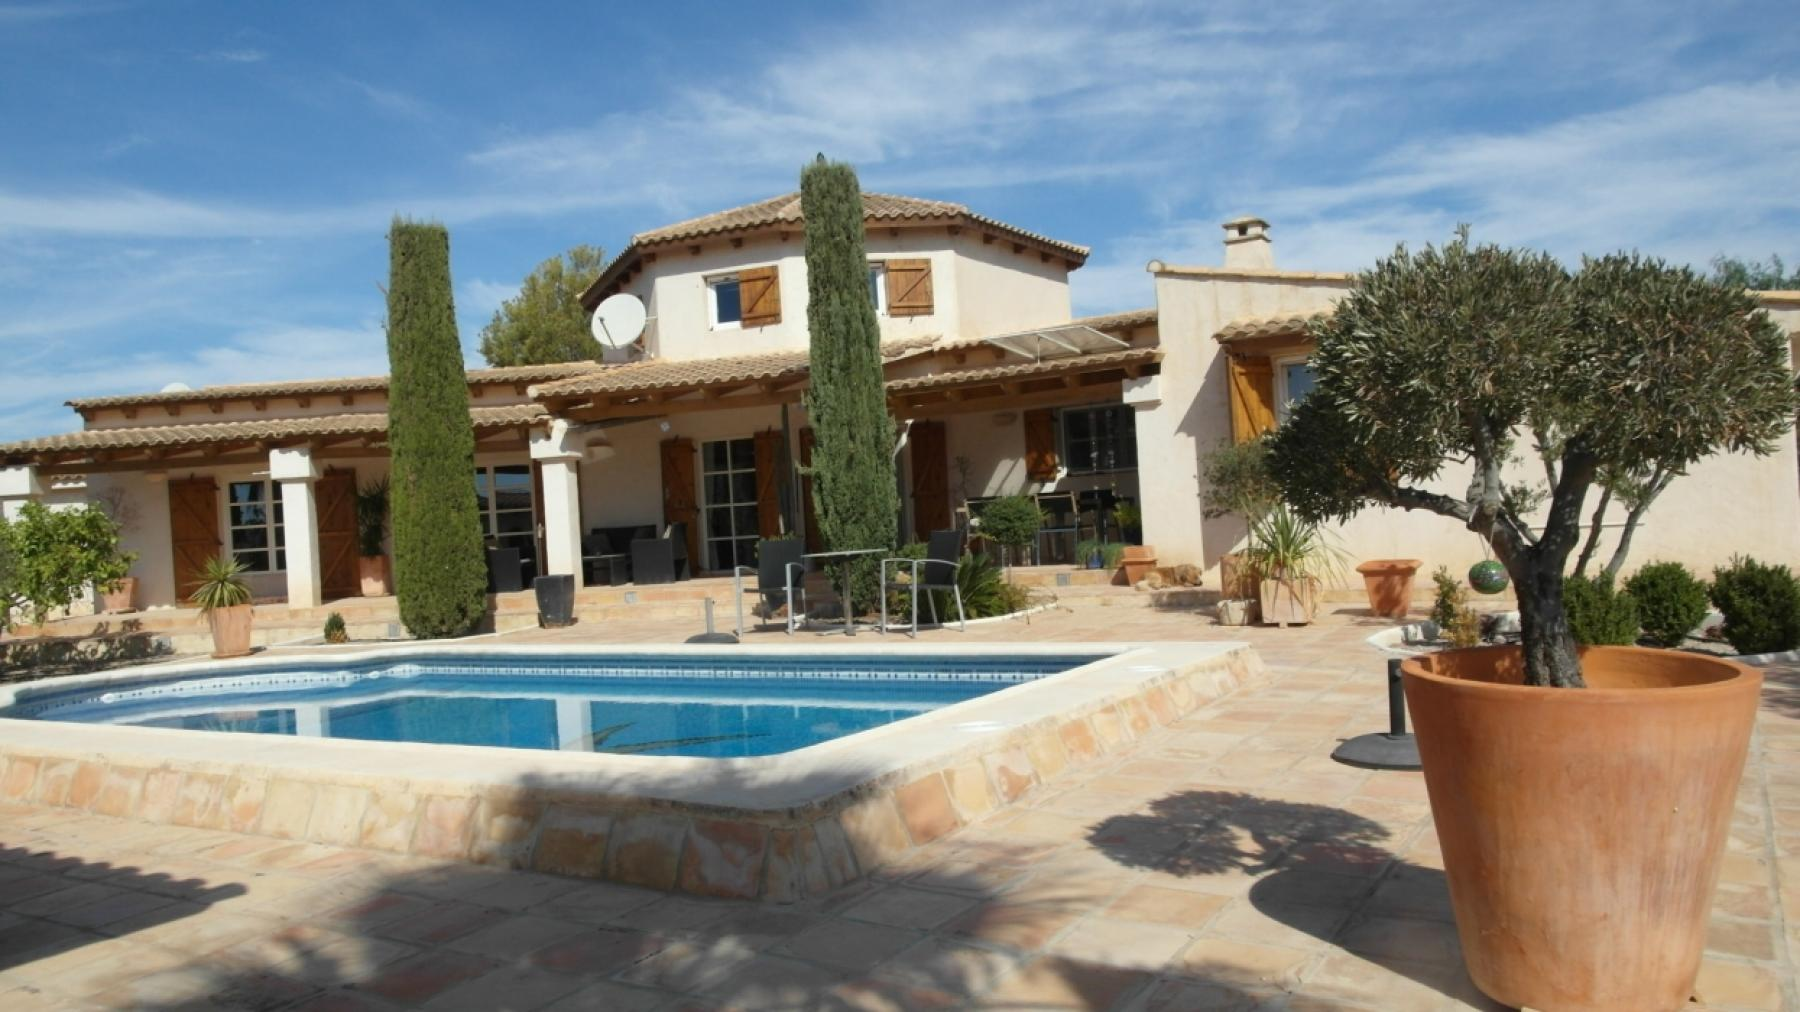 Is 2019 Your Year to fulfill your Dream of Buying a Property in Spain?